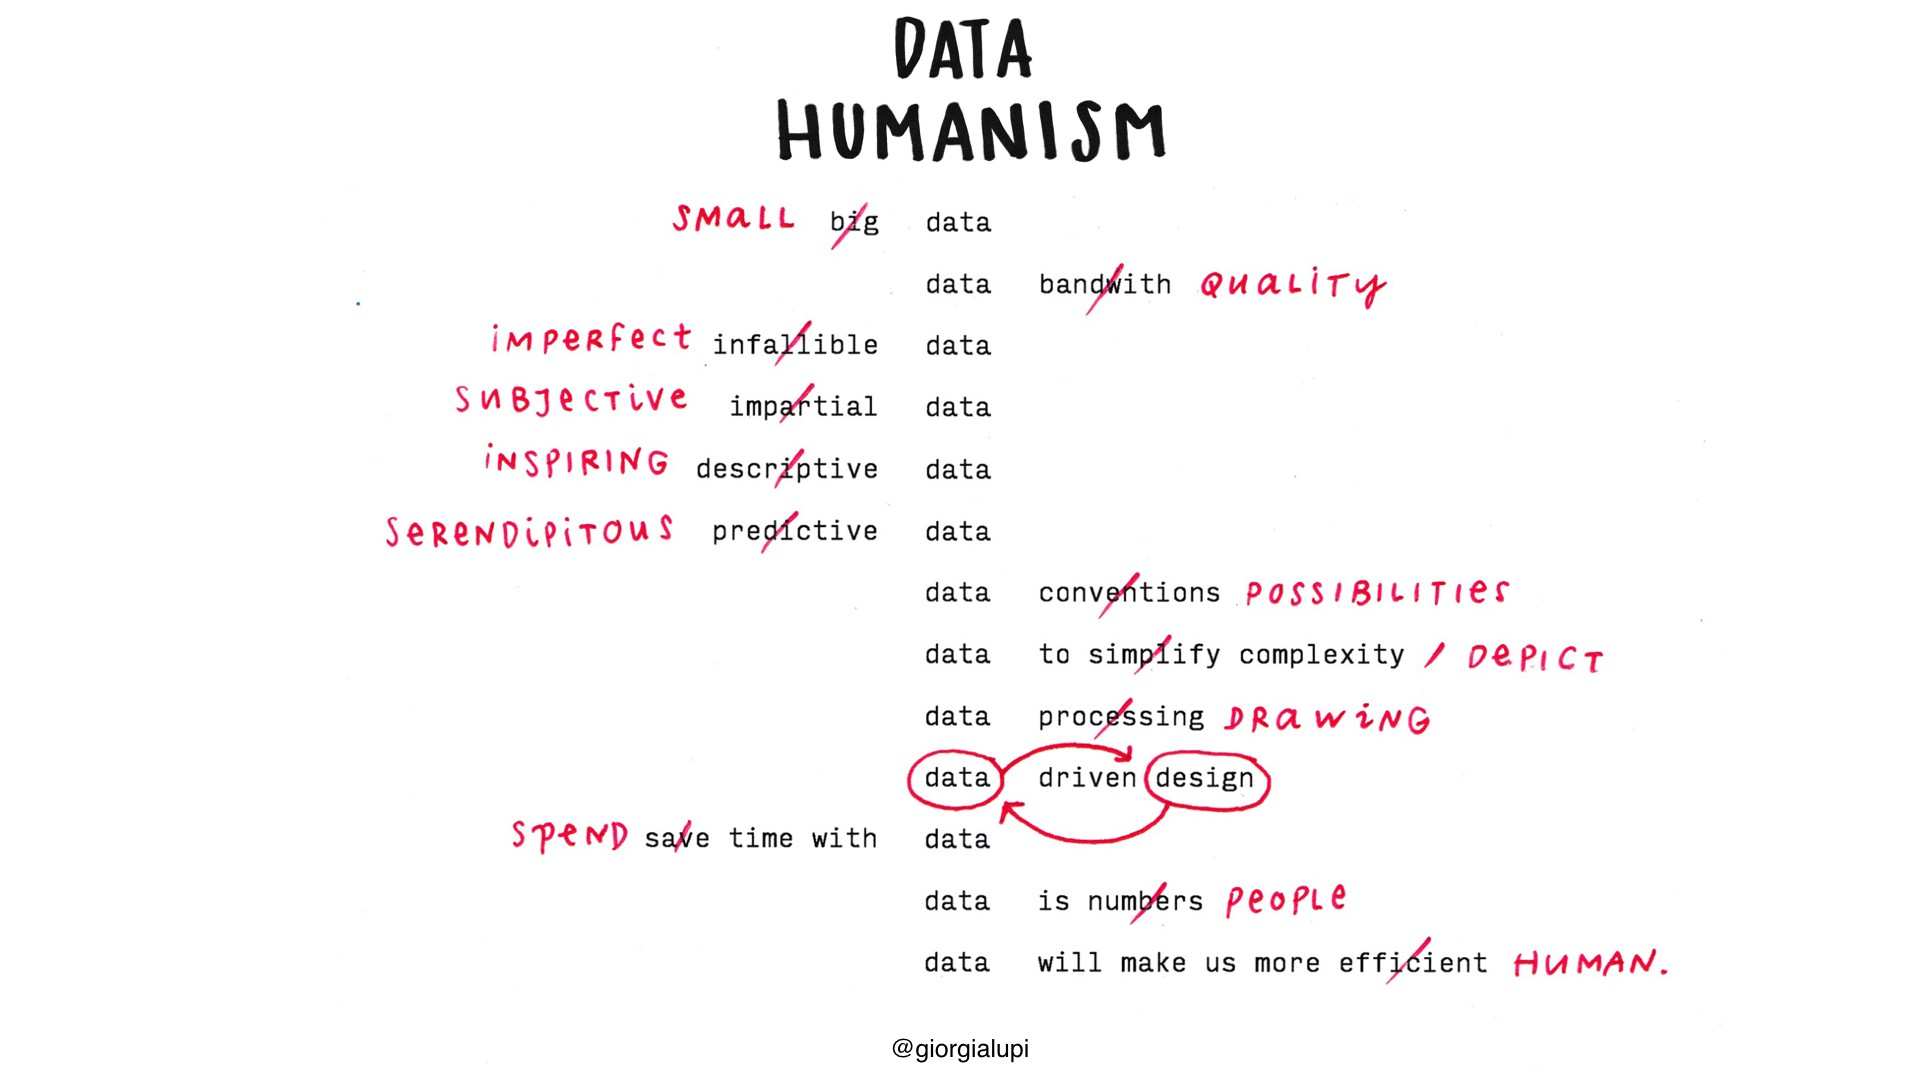 Data Humanism by @giorgialupi